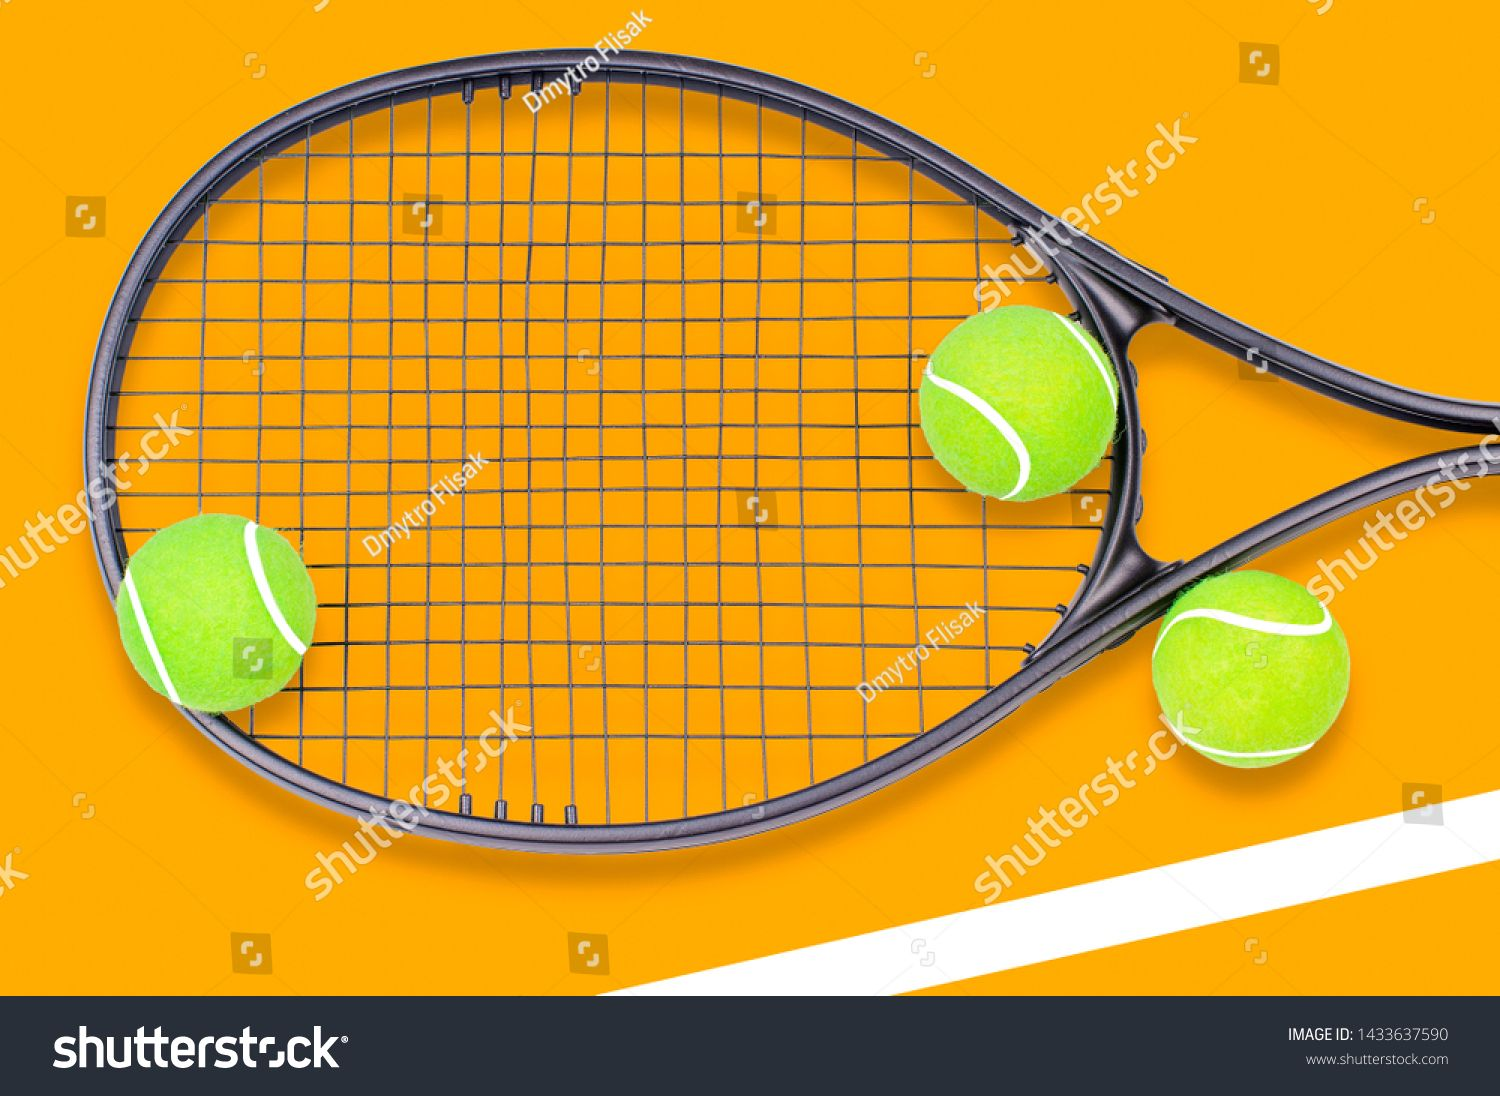 Tennis Racket And Ball Sports On Pastel Background Ad Sponsored Ball Racket Tennis Background Tennis Racket Tennis Rackets